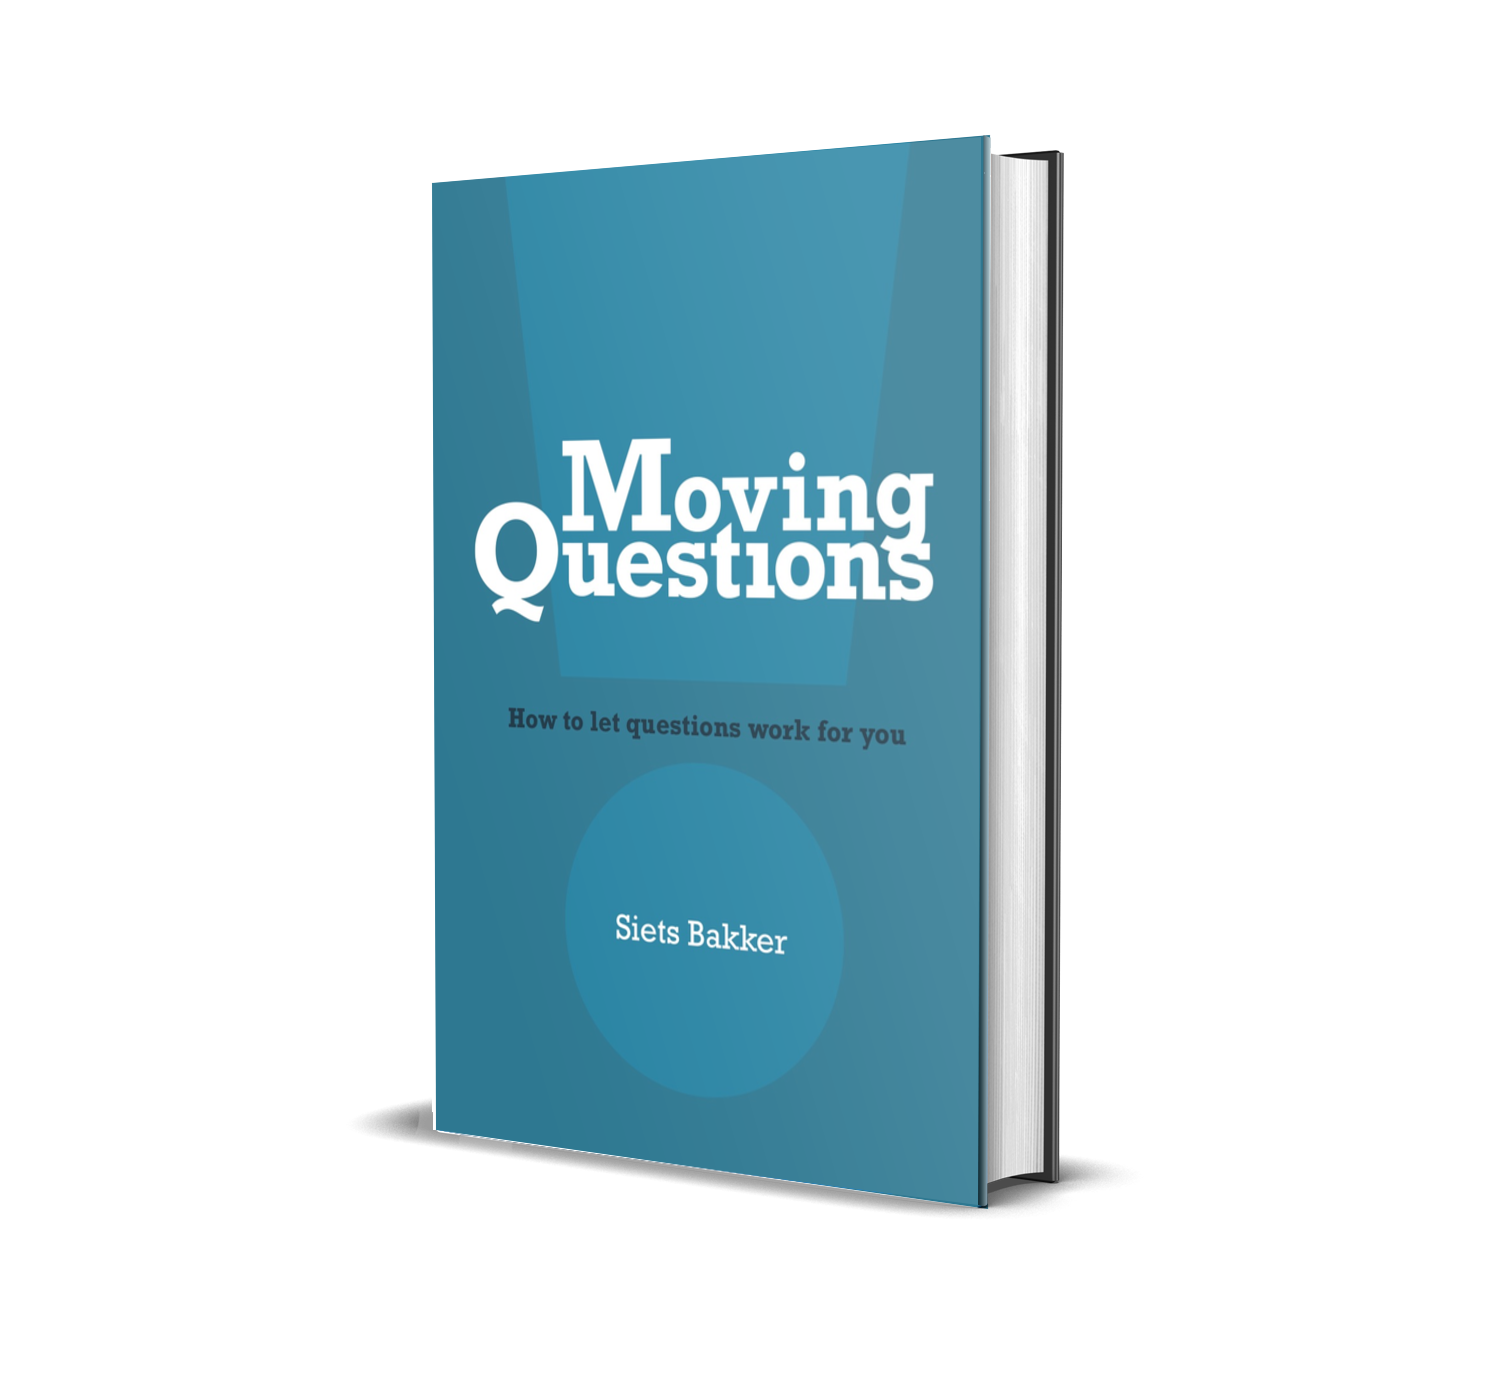 Moving Questions - the book